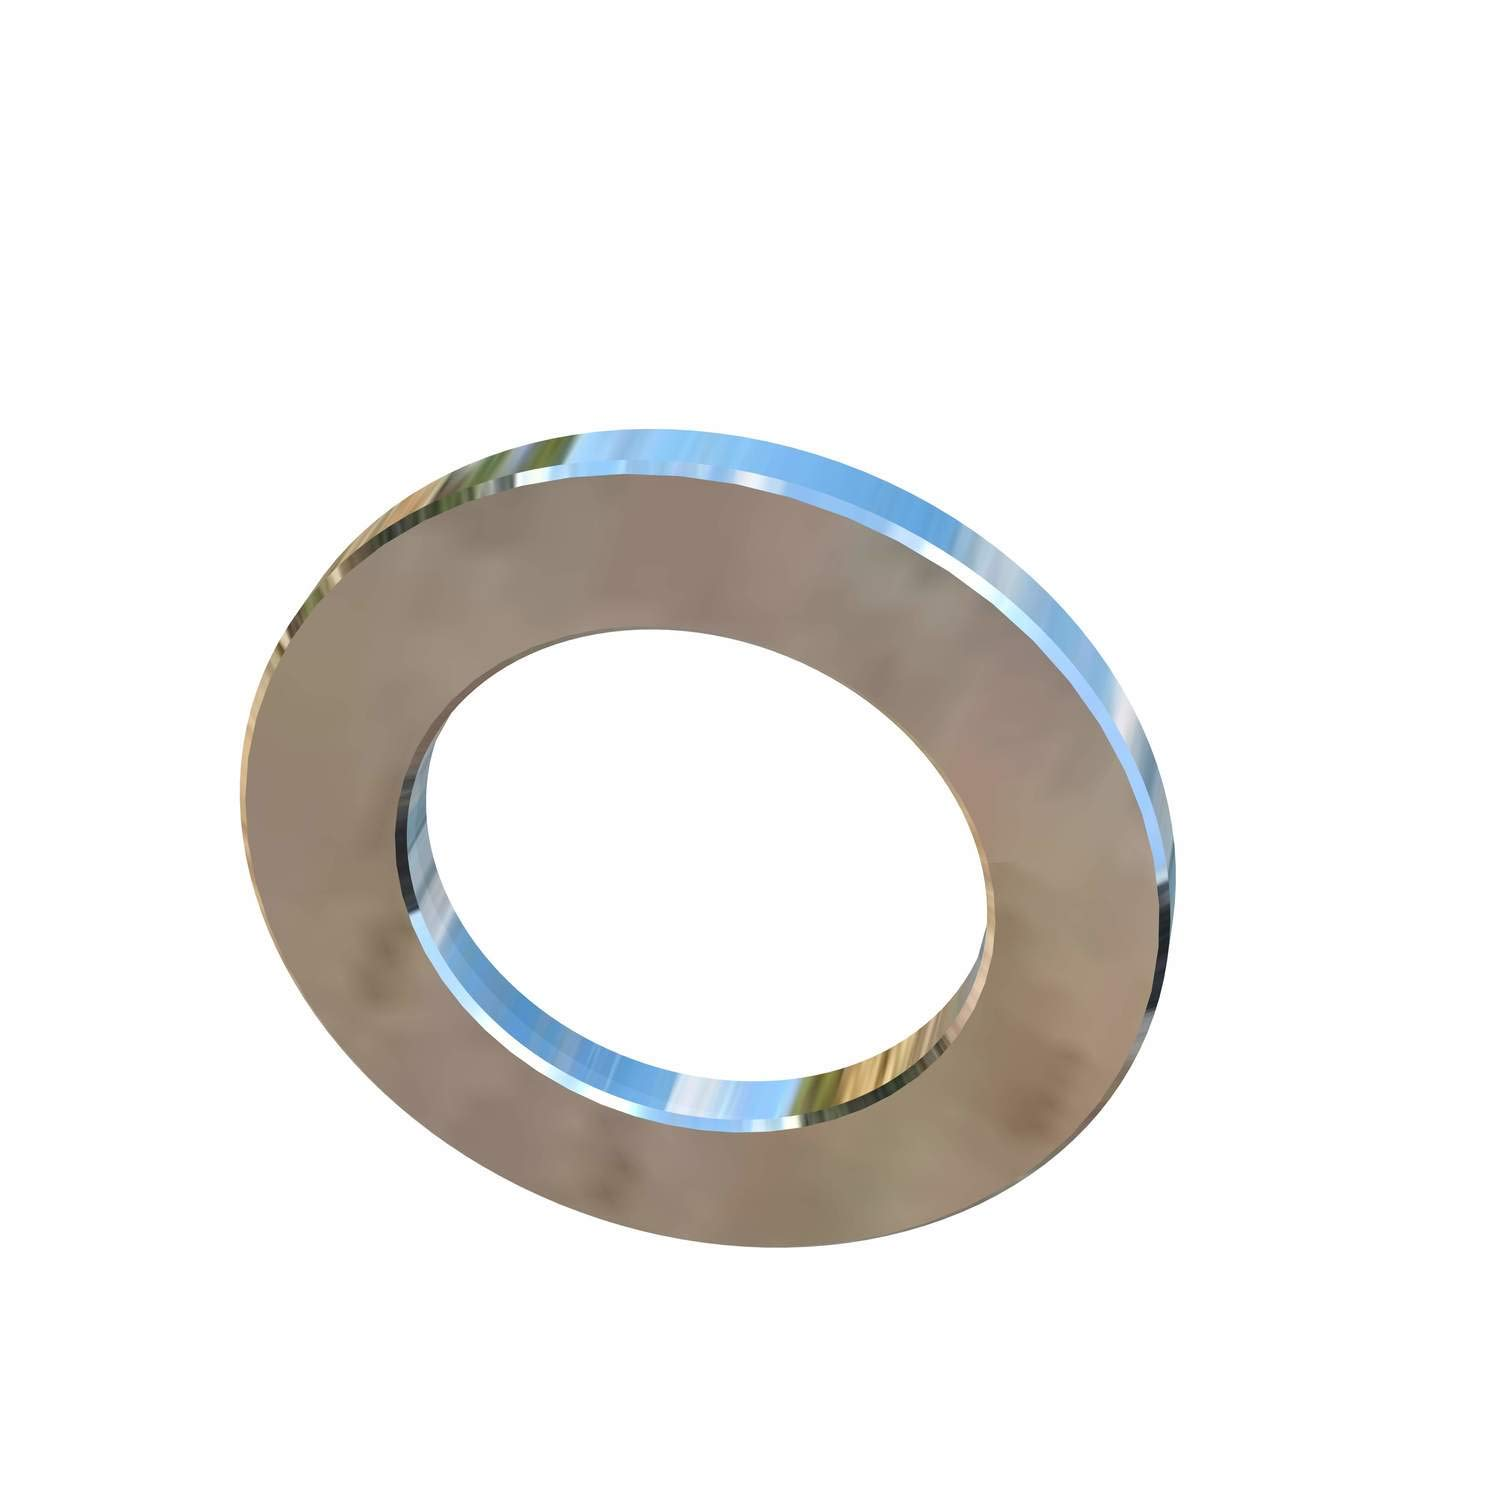 Grade 5 Pack of 20 Inc 3//8 Inch Flat Washer 0.055 Thick X 0.625 Inch Outside Diameter Ti-6Al-4V 609164001 Allied Titanium 0050512,